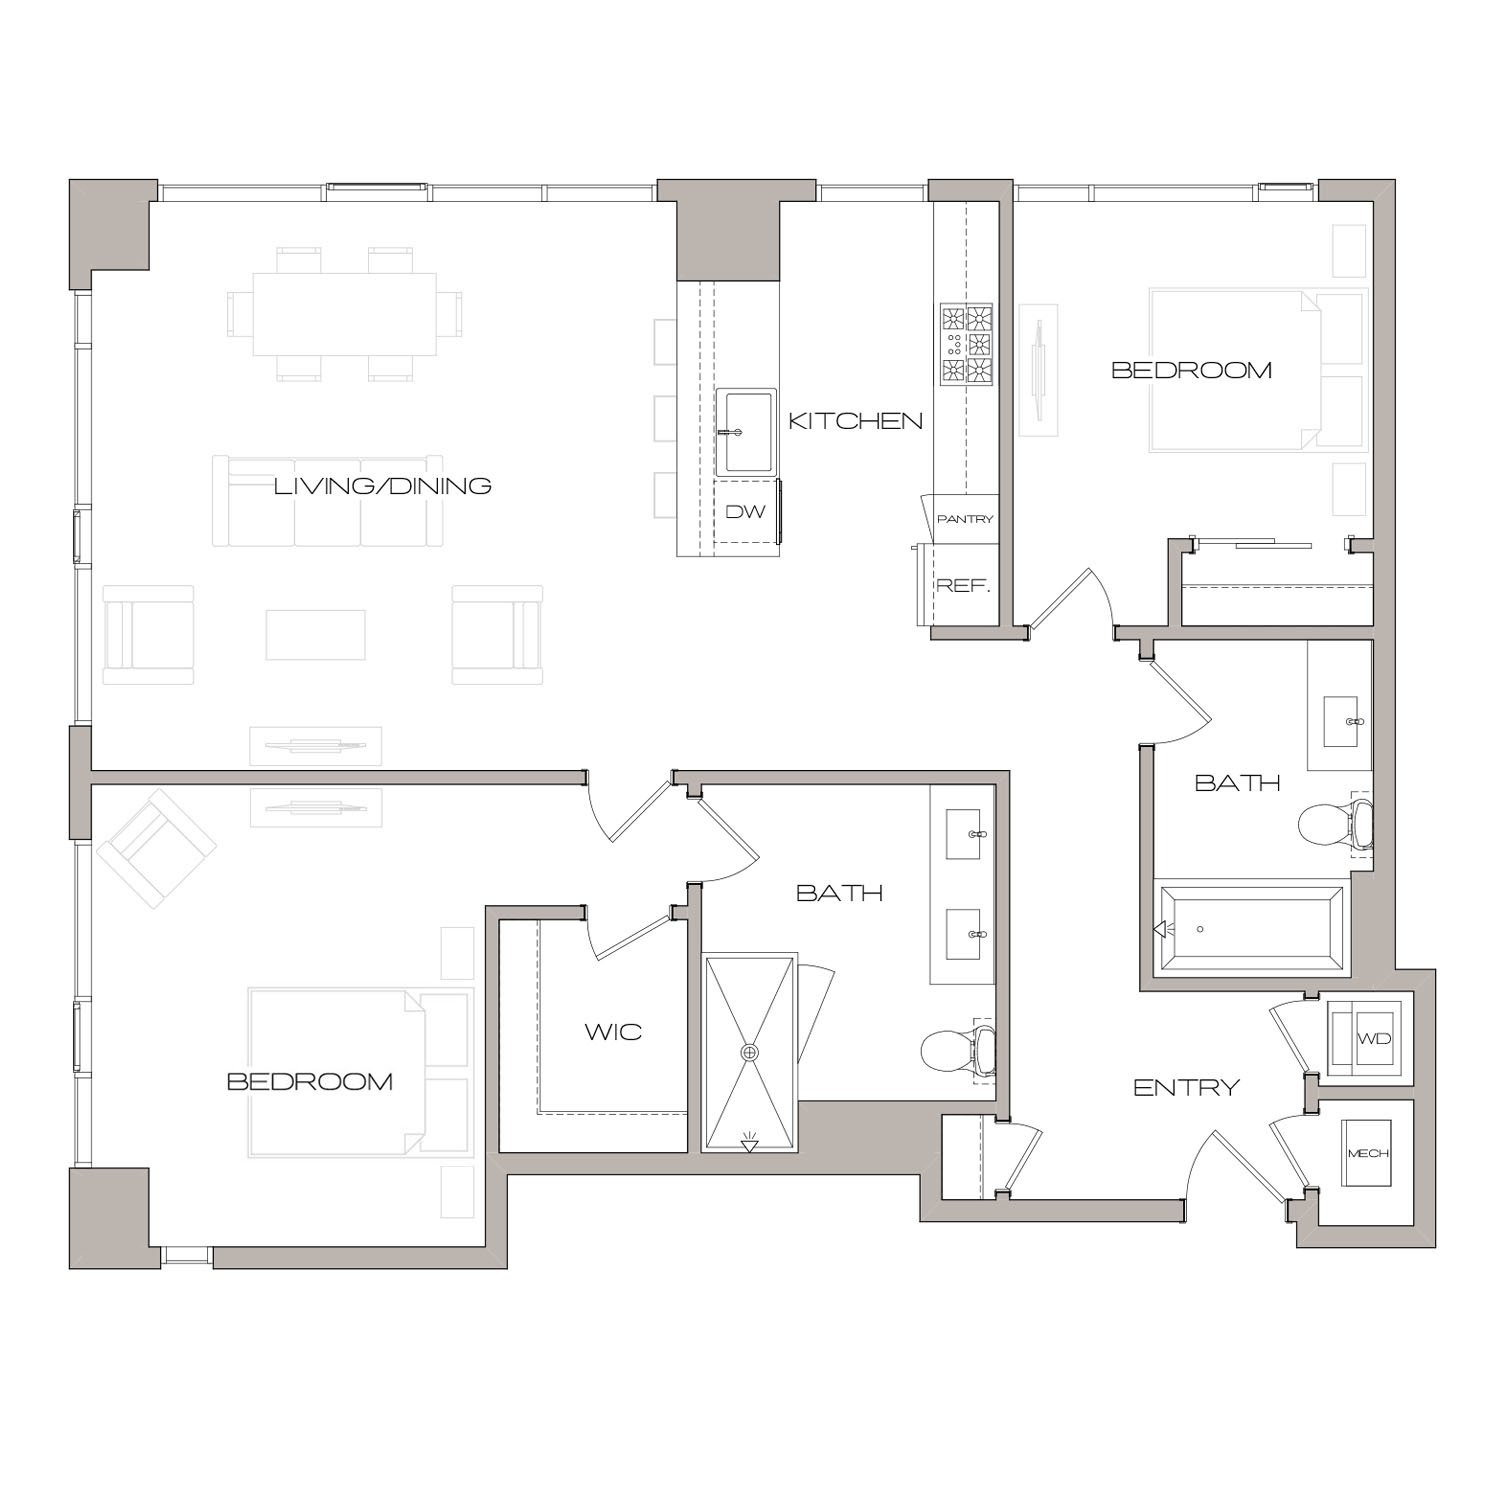 B 5 floor plan diagram. Two bedrooms, two bathrooms, an open kitchen and living area, and a washer dryer.